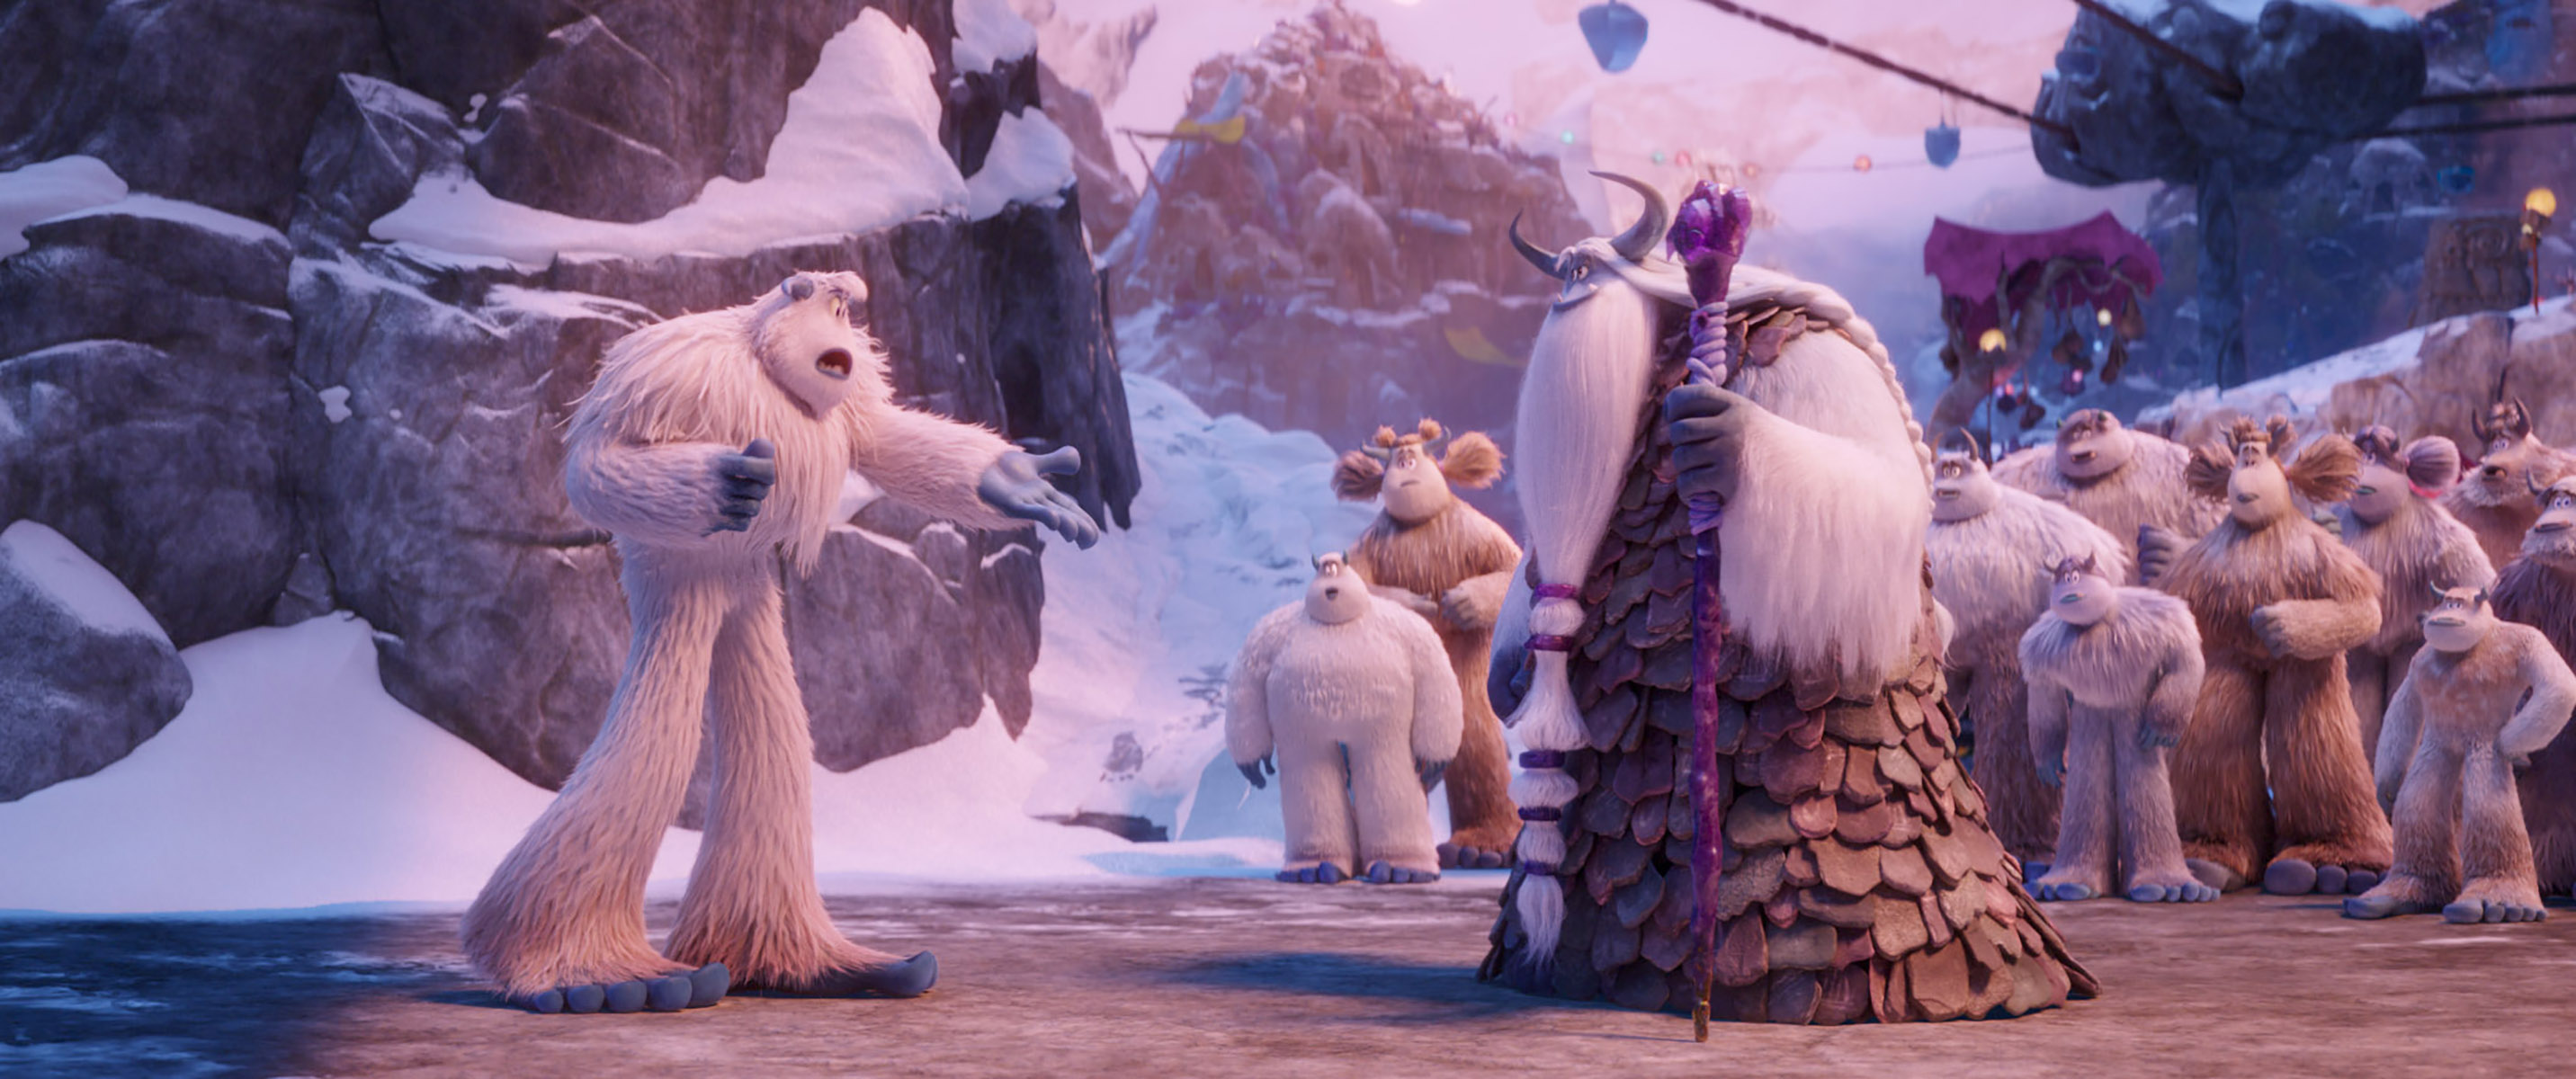 Smallfoot Gallery 14